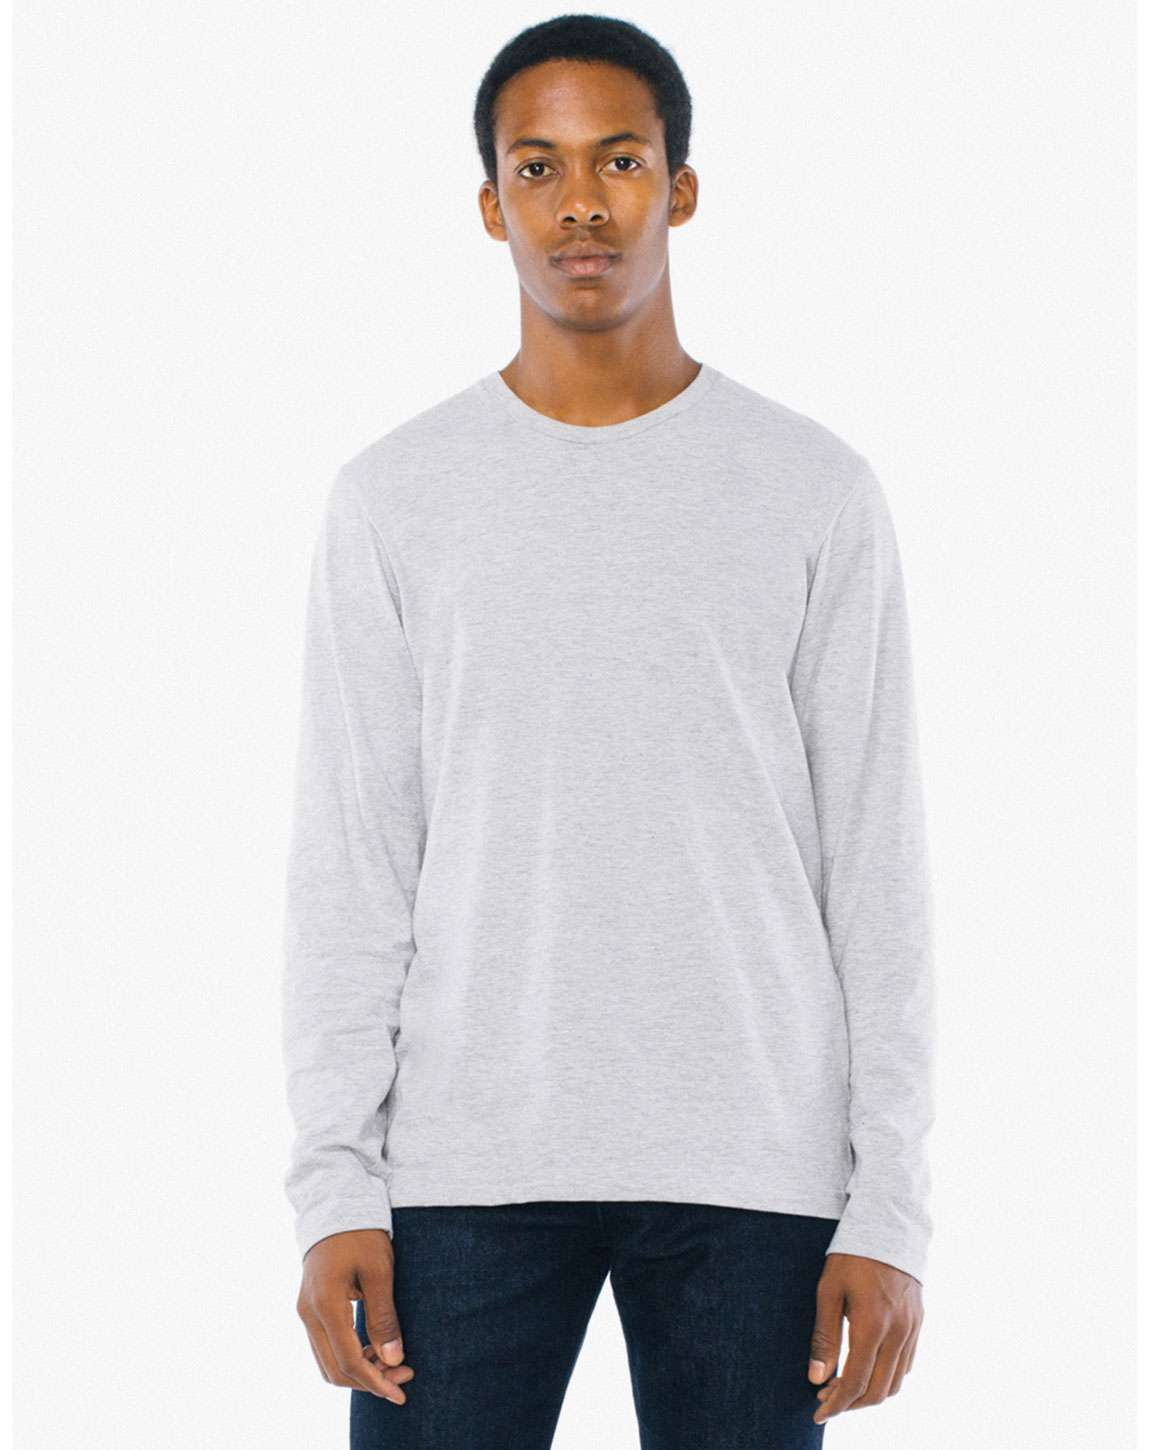 American Apparel SA2426W Unisex Power Washed Long-Sleeve T-Shirt